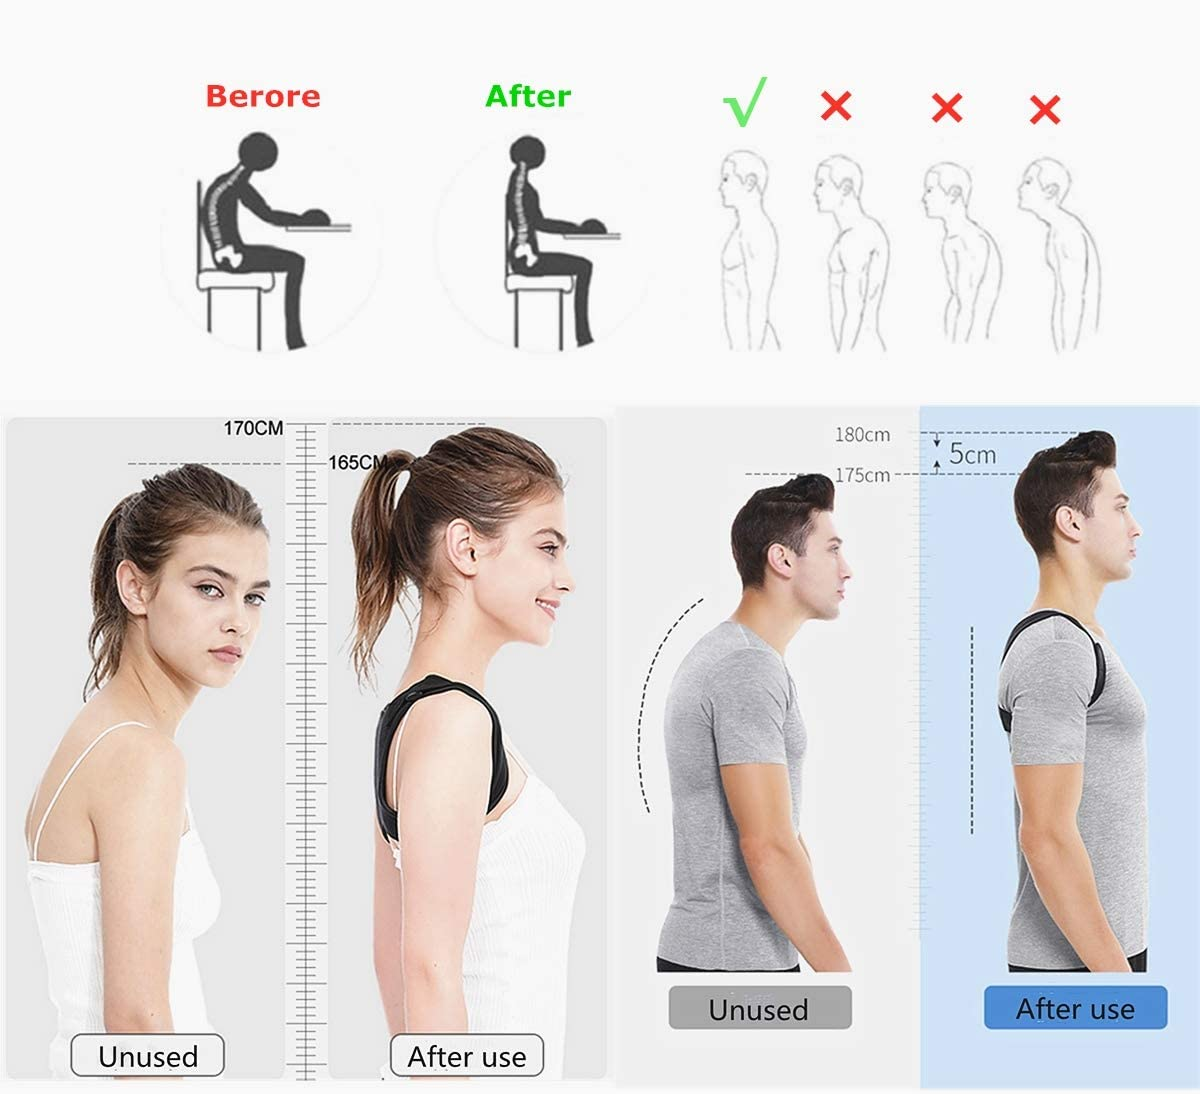 Unisex Posture Corrector,AUCAN Discreet Under Clothes,Designed for sedentary,Adjustable Back Straightener,Comfortable Posture Trainer for Spinal Alignment and Posture Support